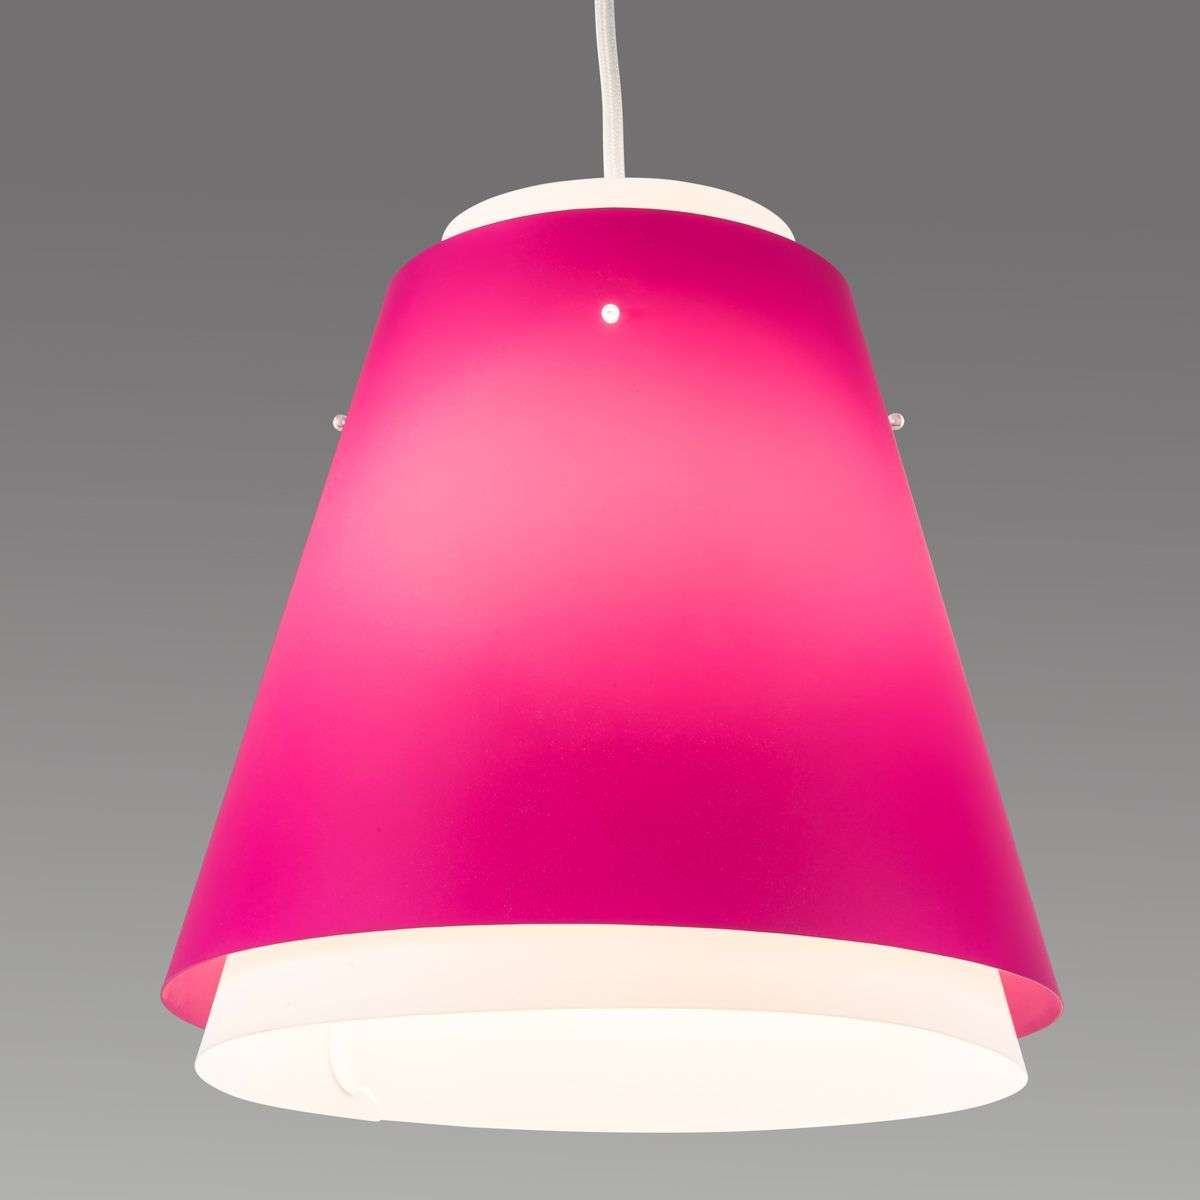 Bell colourful hanging light in magenta-7007587-32